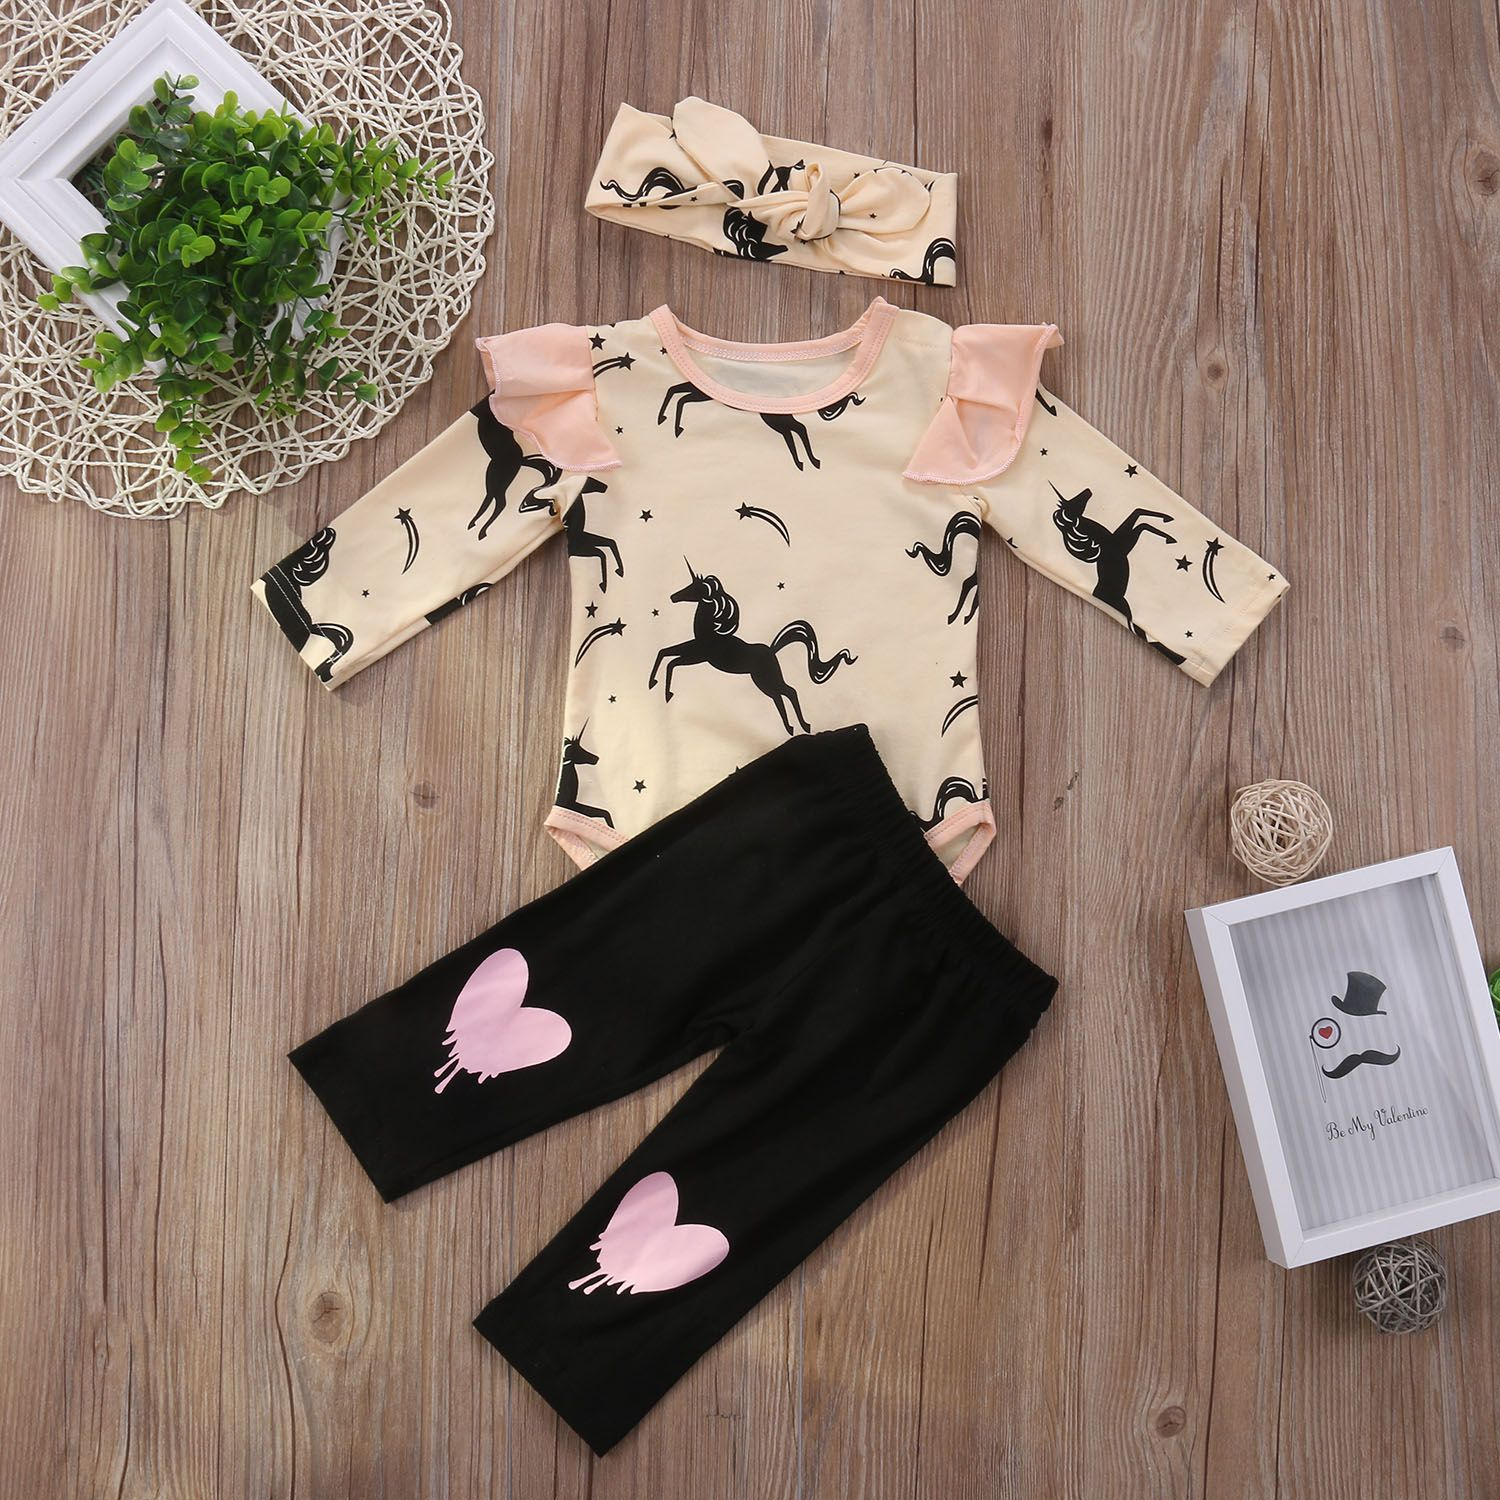 3pcs Newborn Kids Baby Girl Clothes T-shirt Tops+Long Pants+Headband Outfits Set